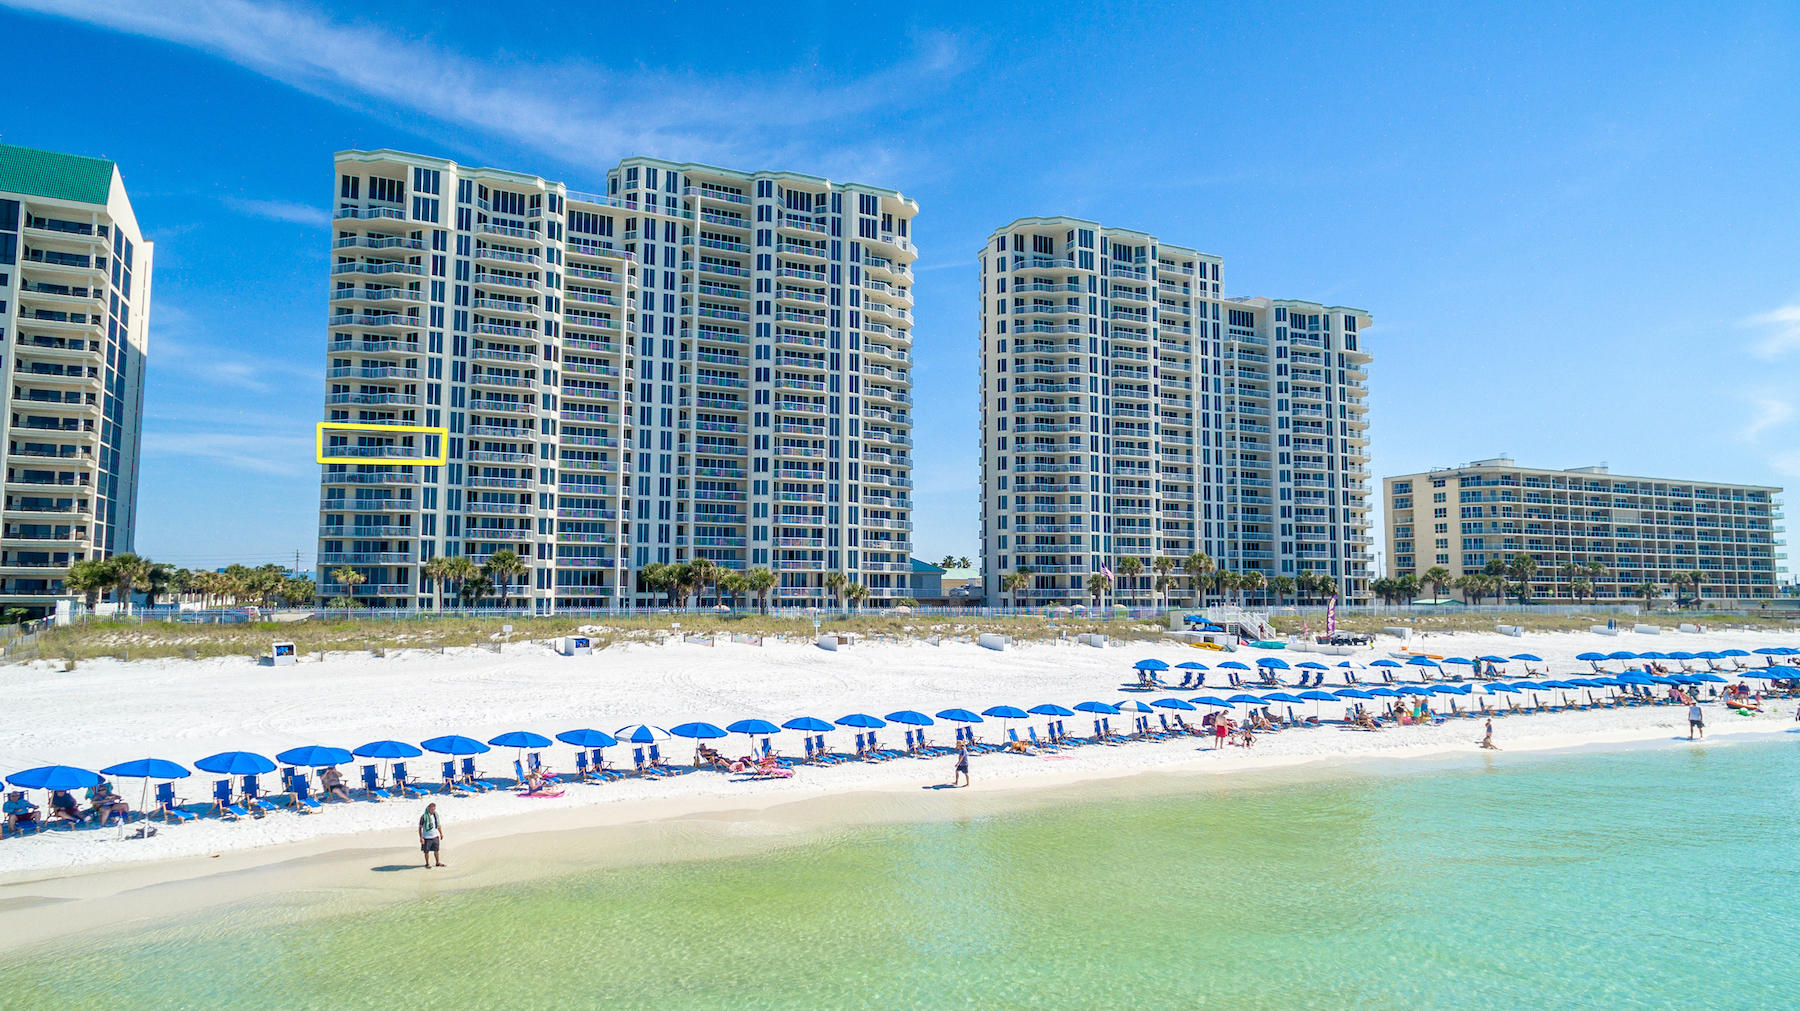 1048 US-98 Unit 706, Destin, FL, 32541